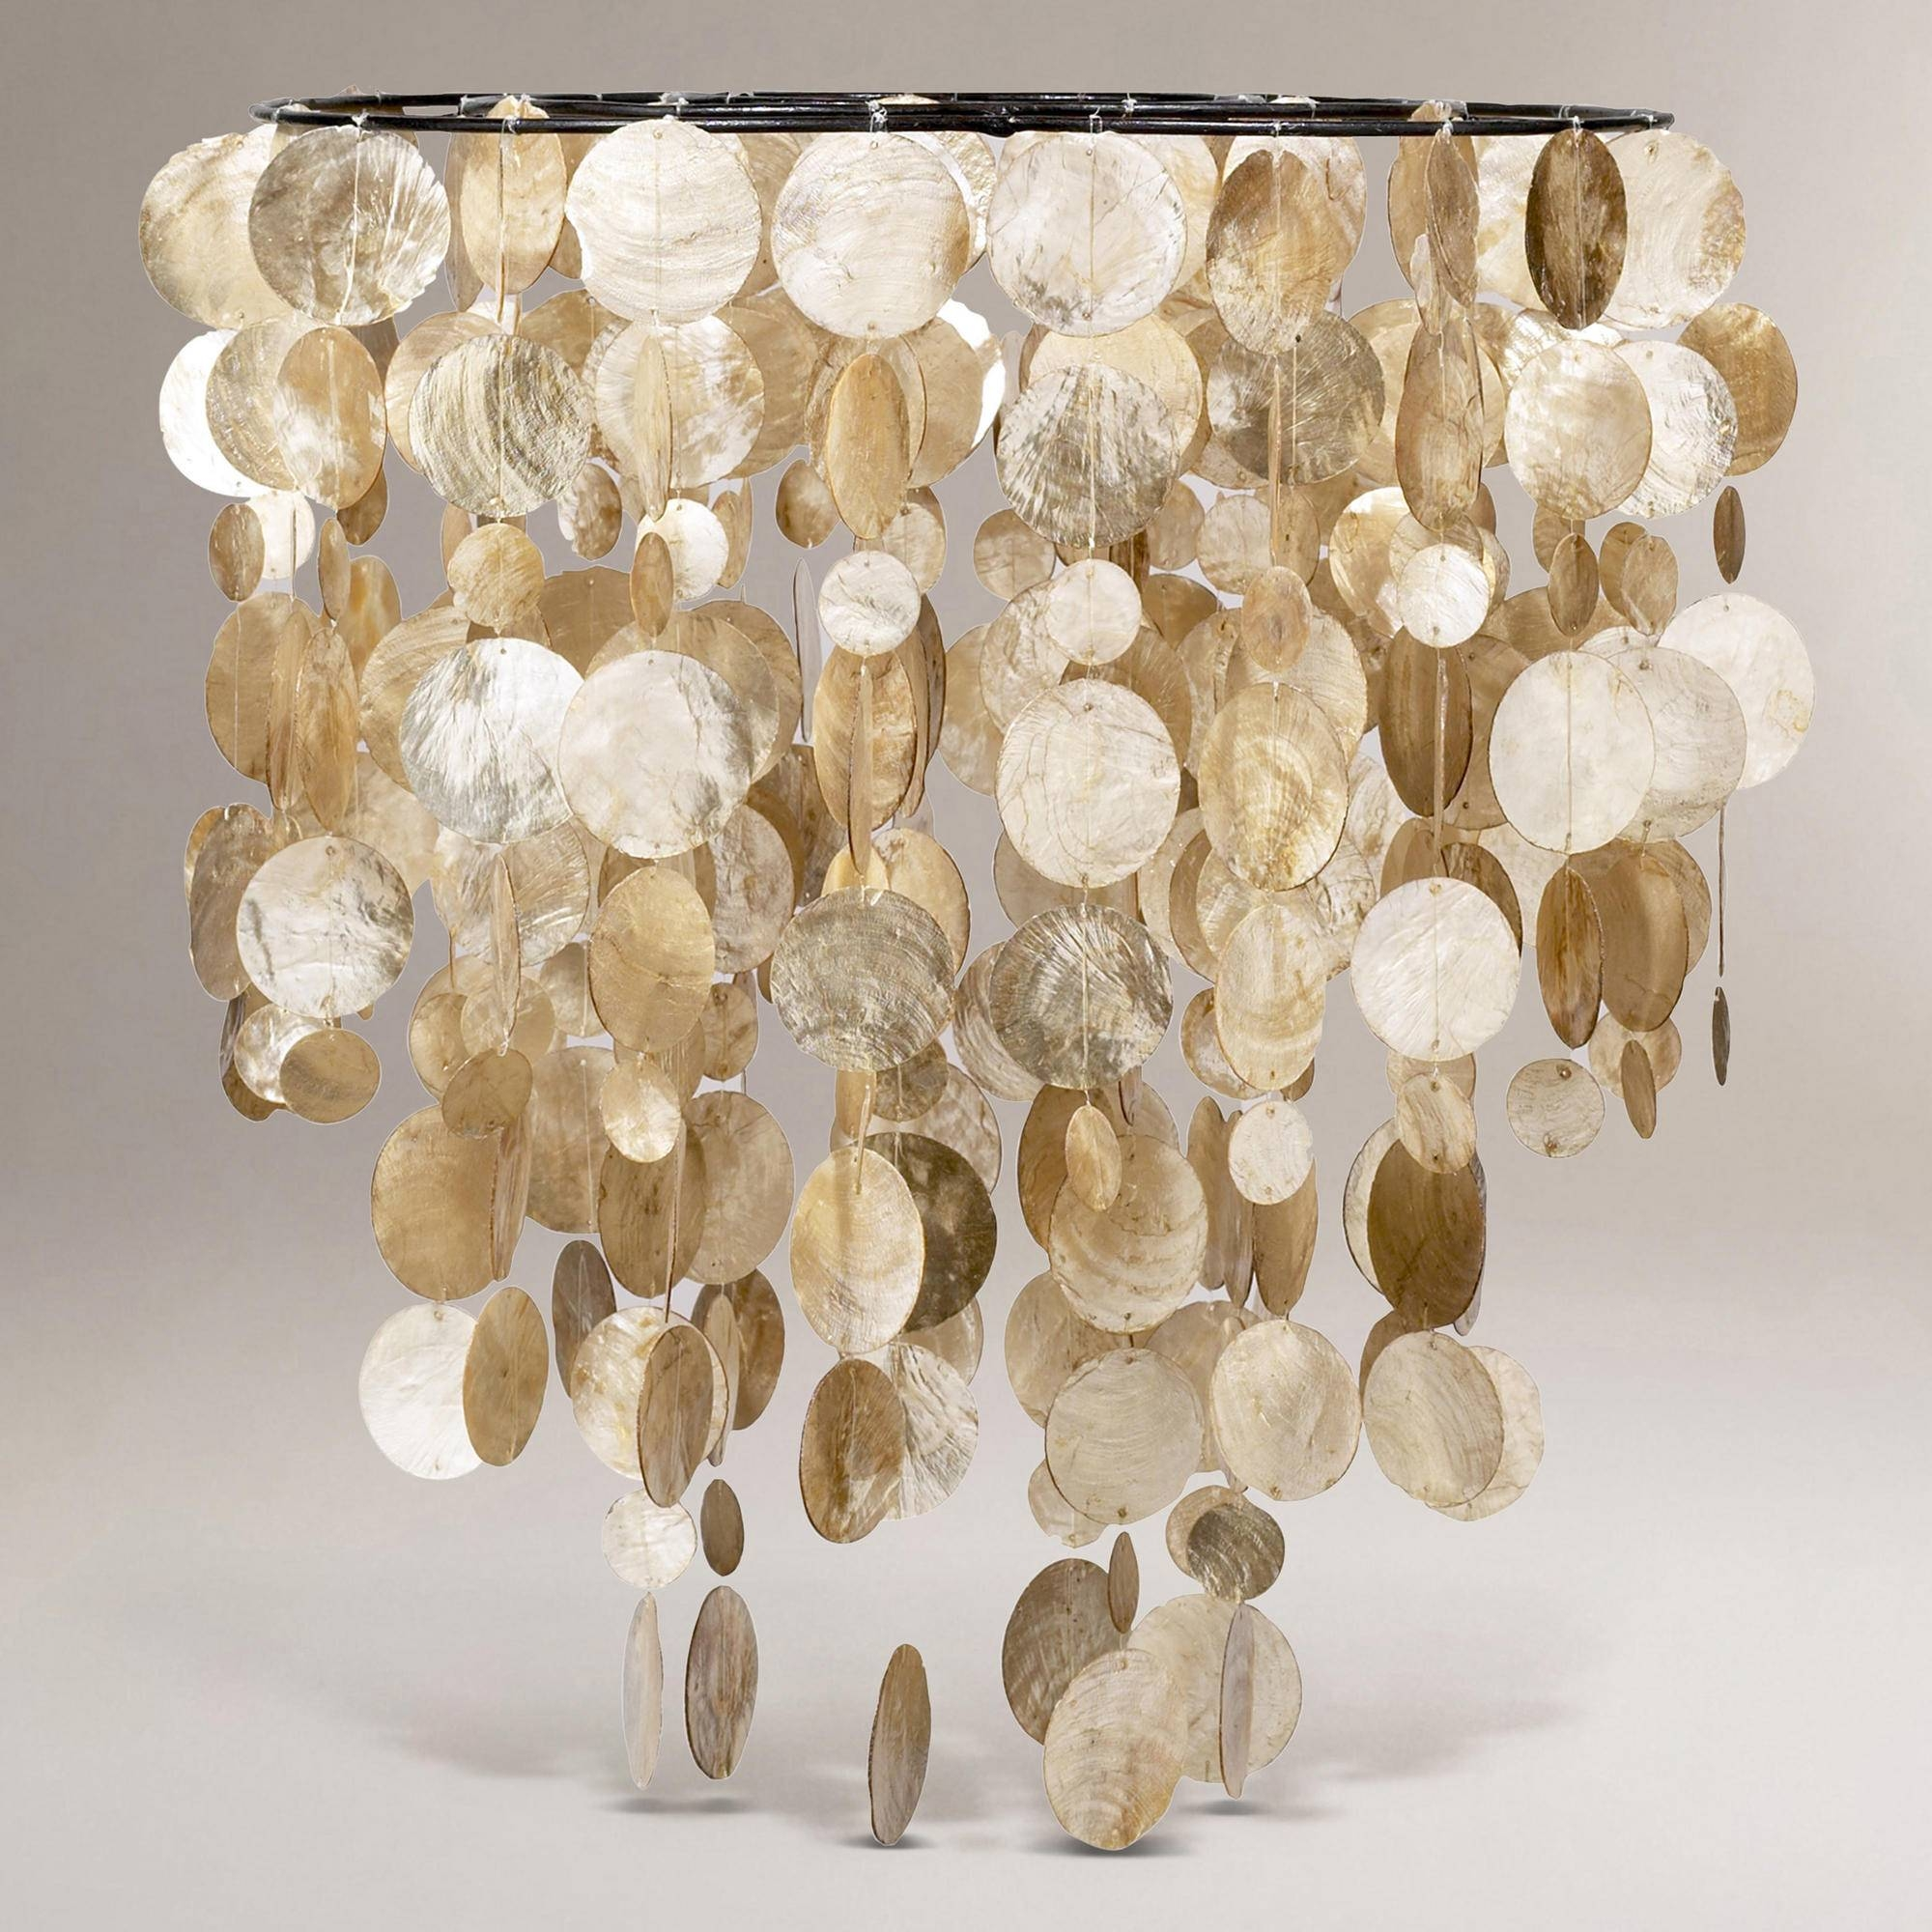 Capiz Shell Pendant Light - Baby-Exit with regard to Shell Light Shades Pendants (Image 1 of 15)